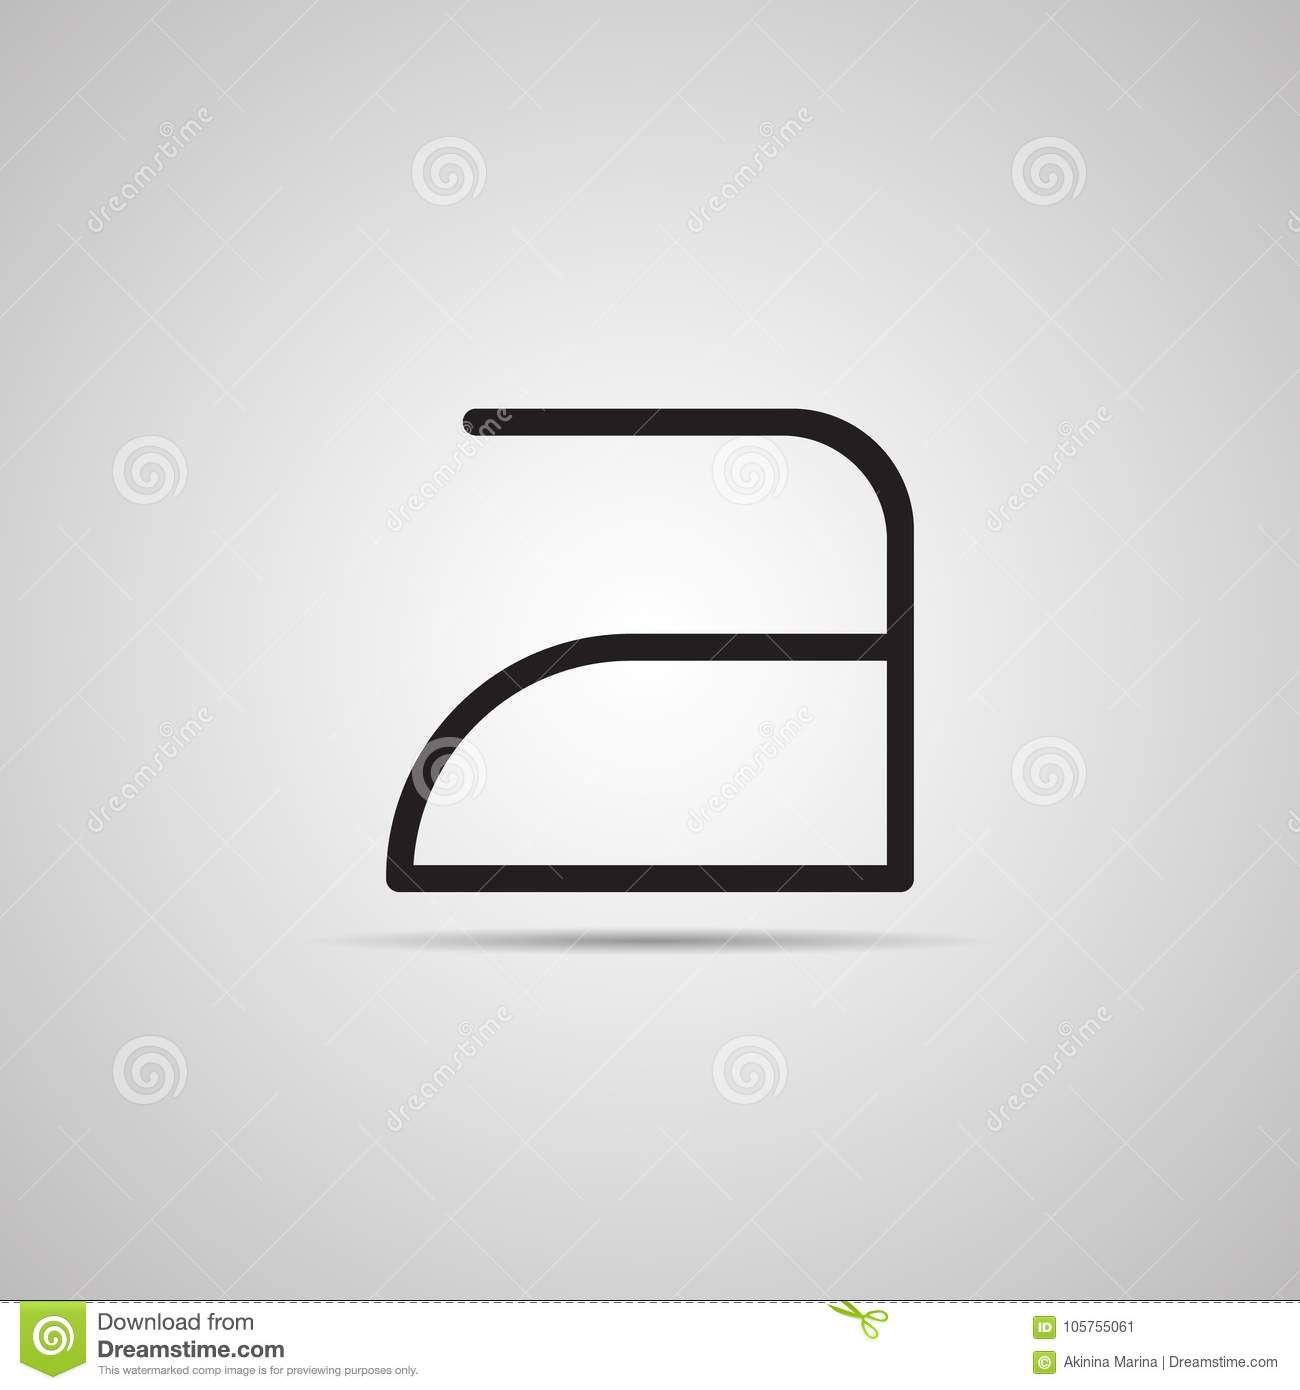 Symbol On Care Of Clothes Iron For Washing Instruction Stock Vector